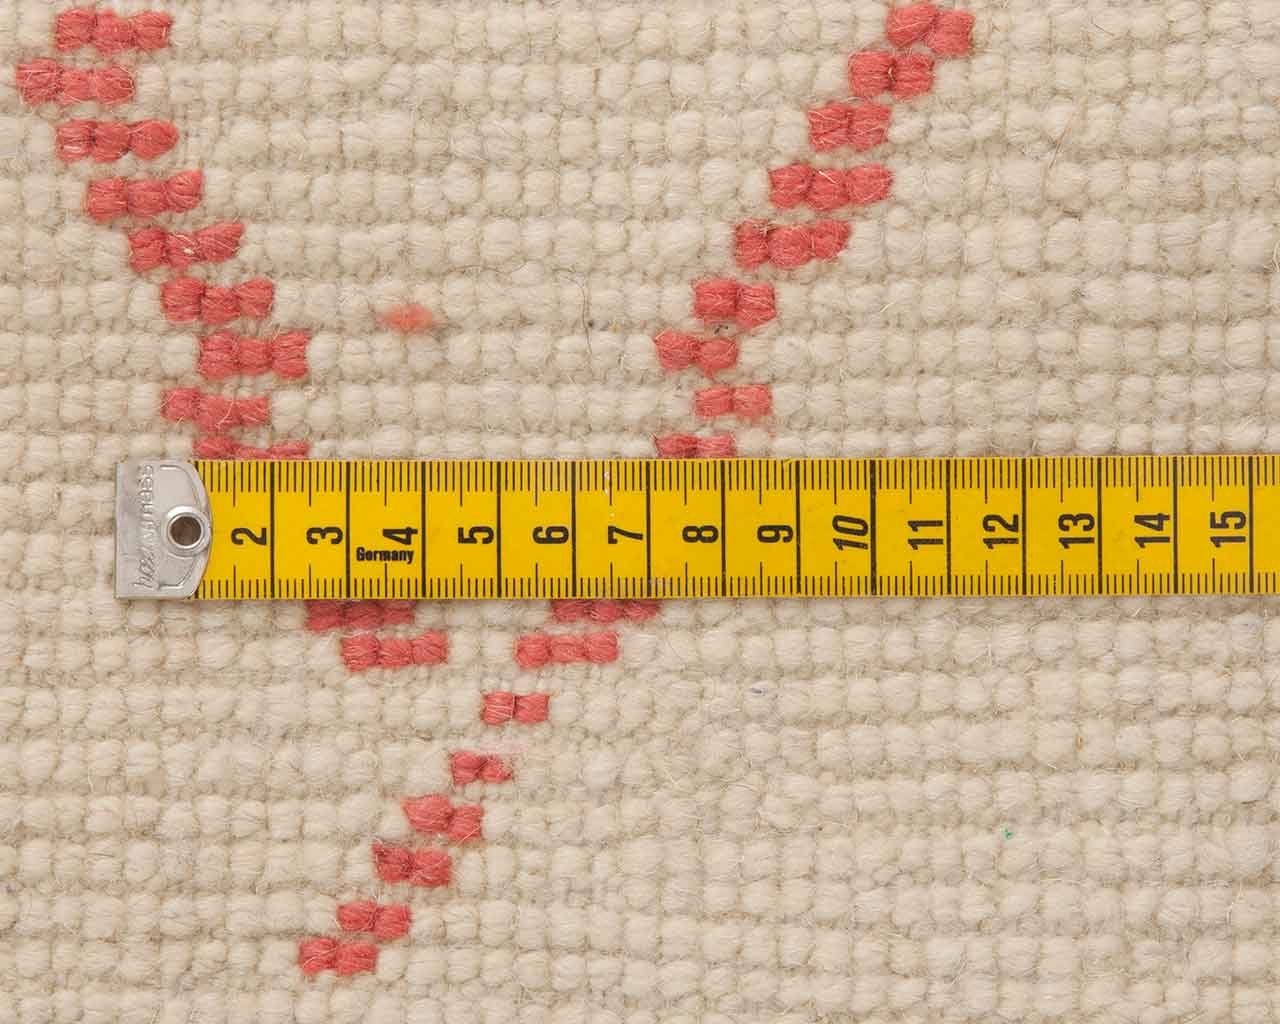 tapeline knots rugs handknotted measurement 1